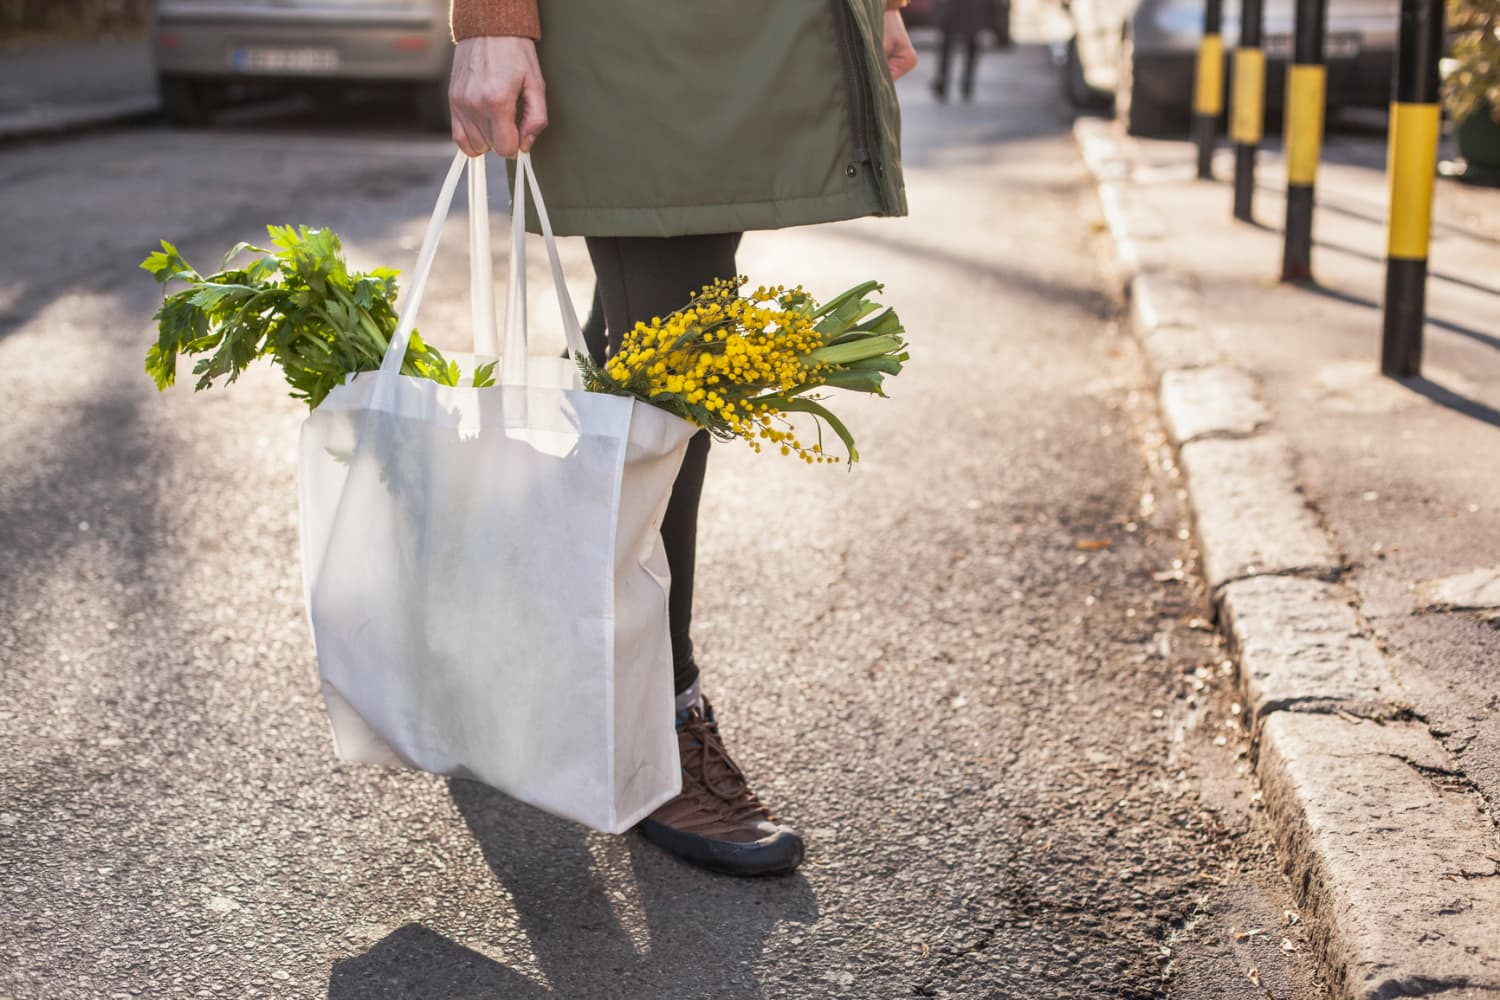 Some Cities Are Restricting Reusable Grocery Bags—Here's What You Need to Know